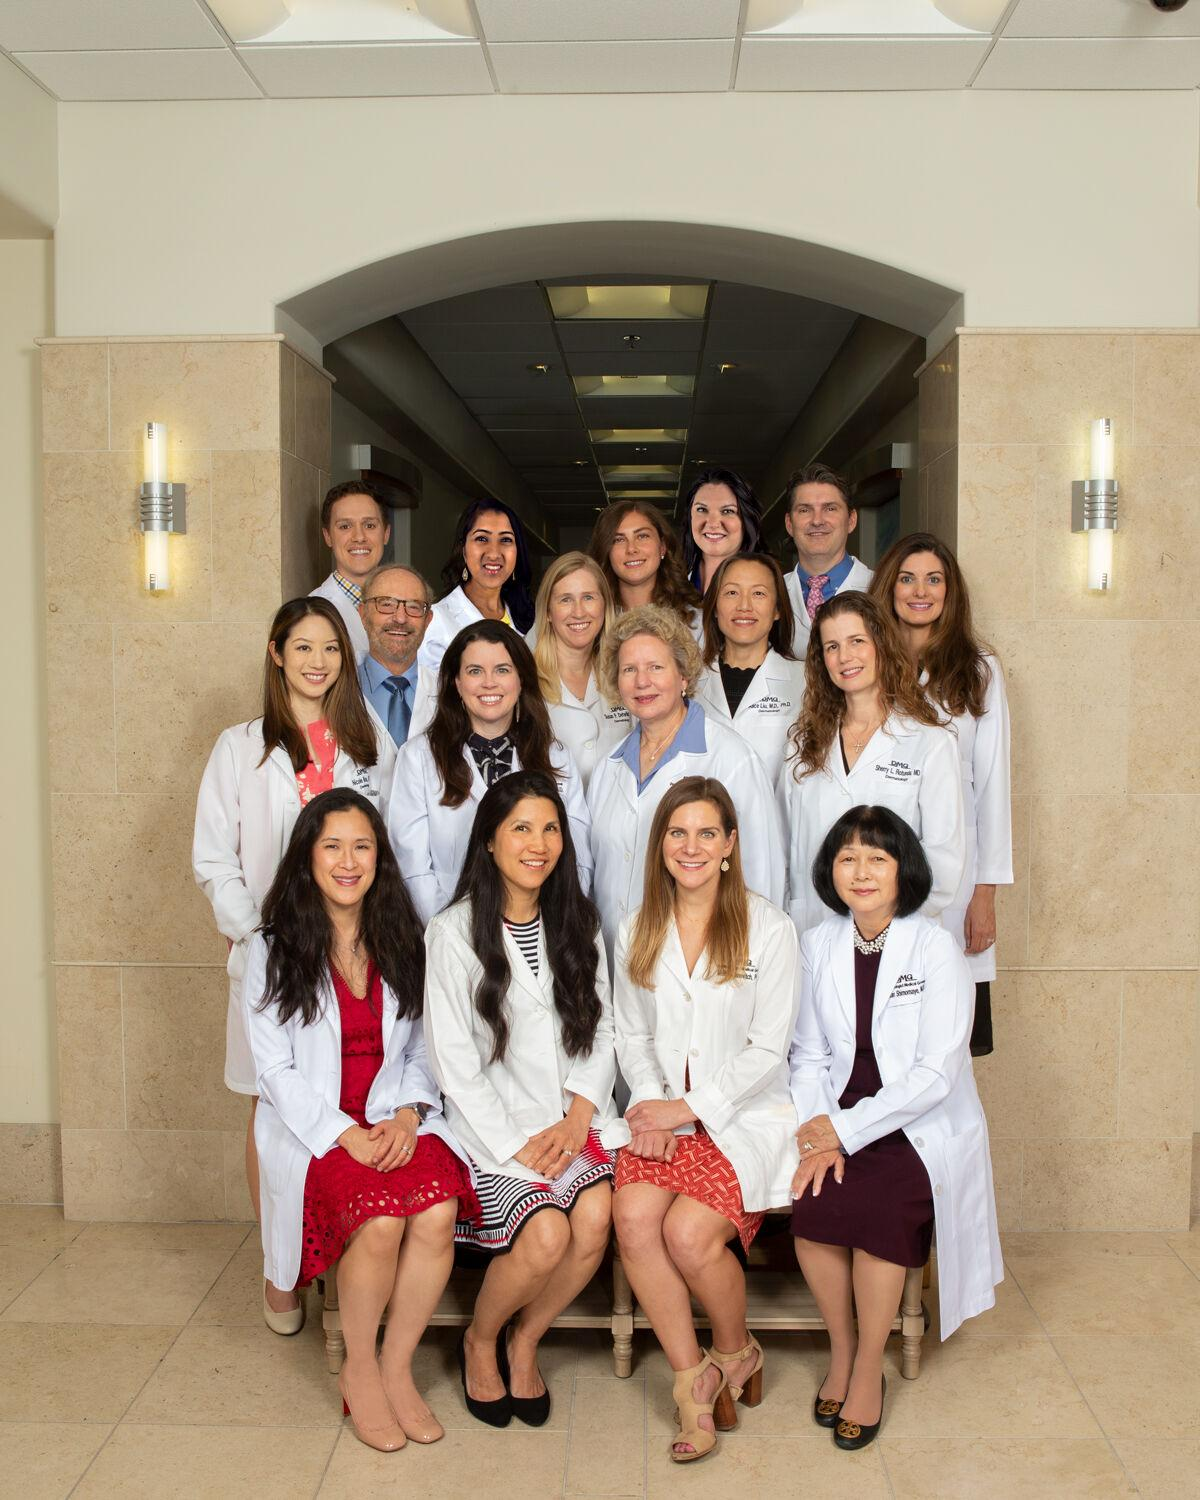 Faces of Health Care 2020 / Dermatoligists Medical Group of North County